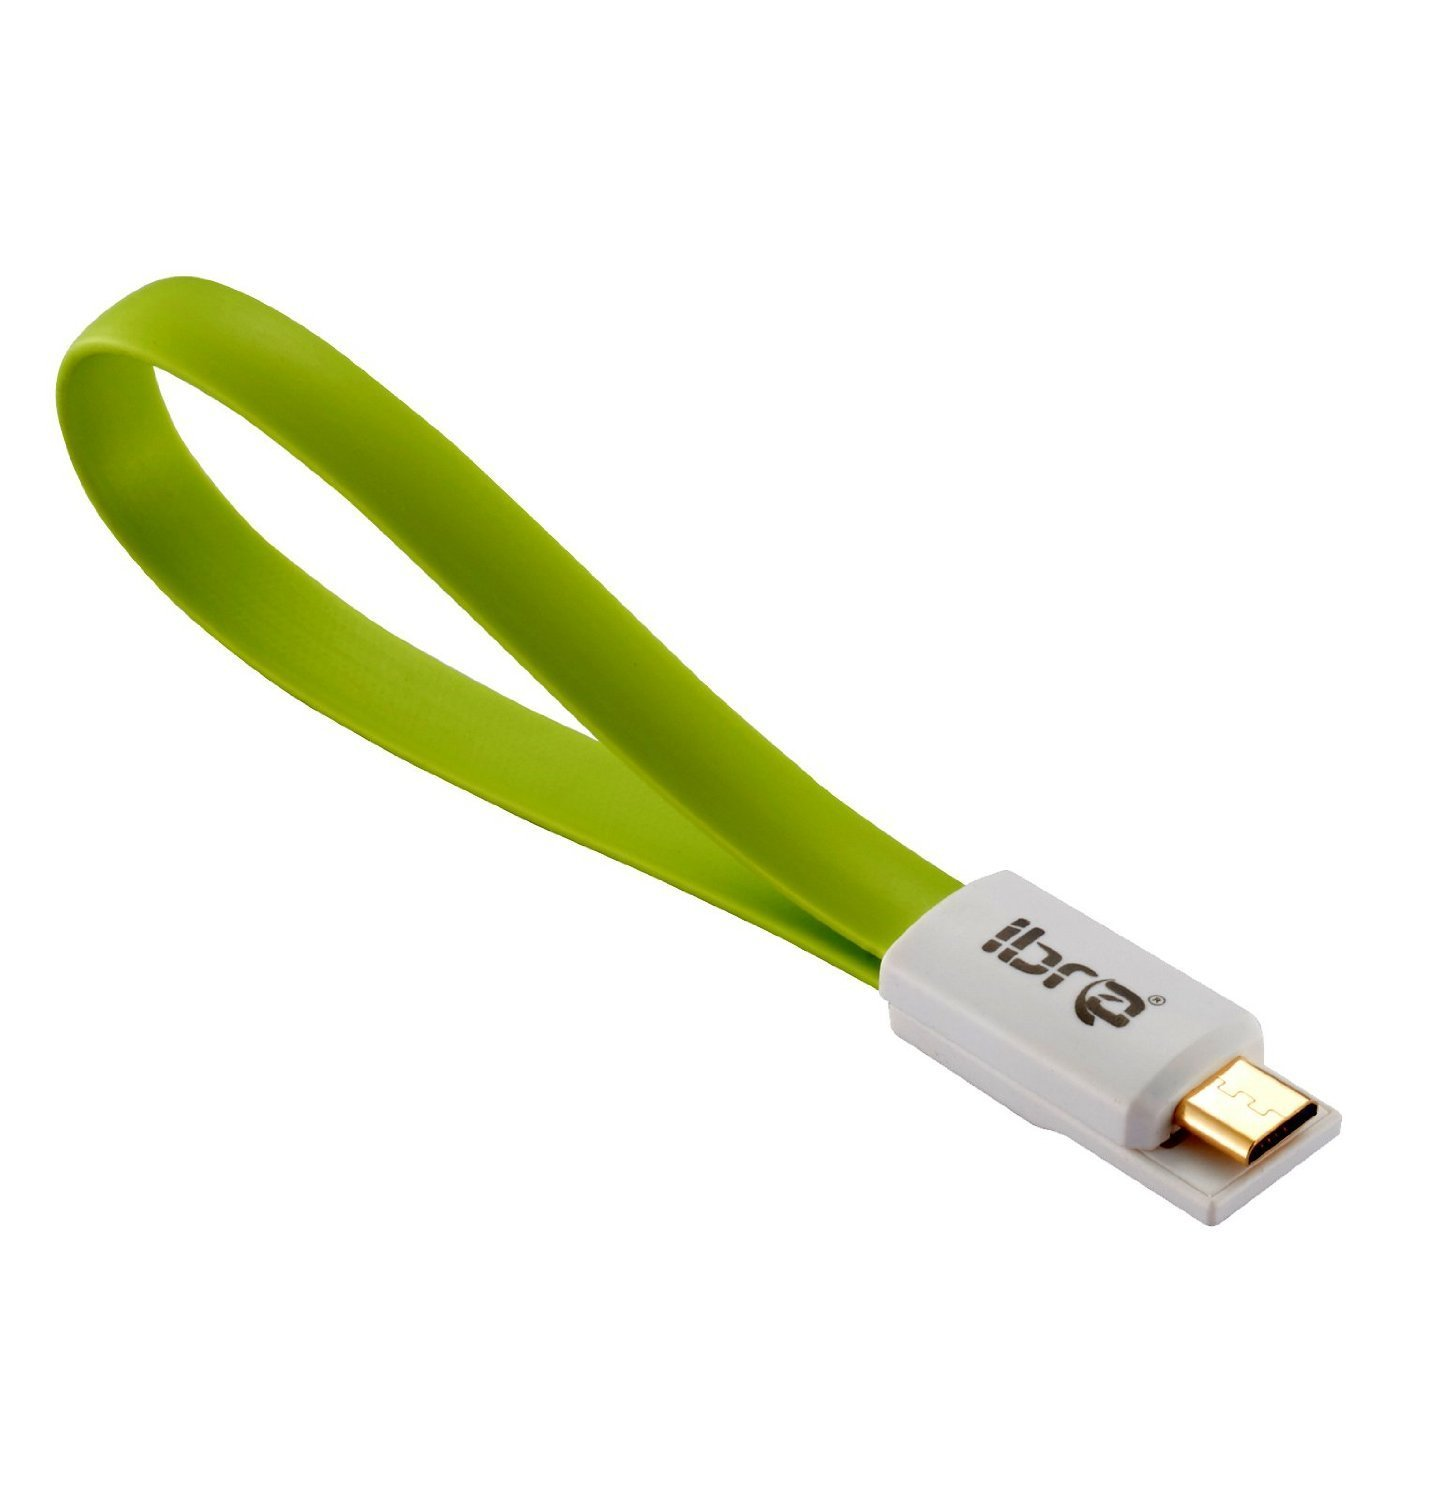 IBRA 0.2M Magnet Short and Compact Micro USB Charging/Sync Data Cable for for Samsung Galaxy S4 i9500 i9300 N7100 Nokia HTC Sony Xperia Series and all Mobilephones/Tablets/Cameras/Sat Nav -7.5Inch - Green